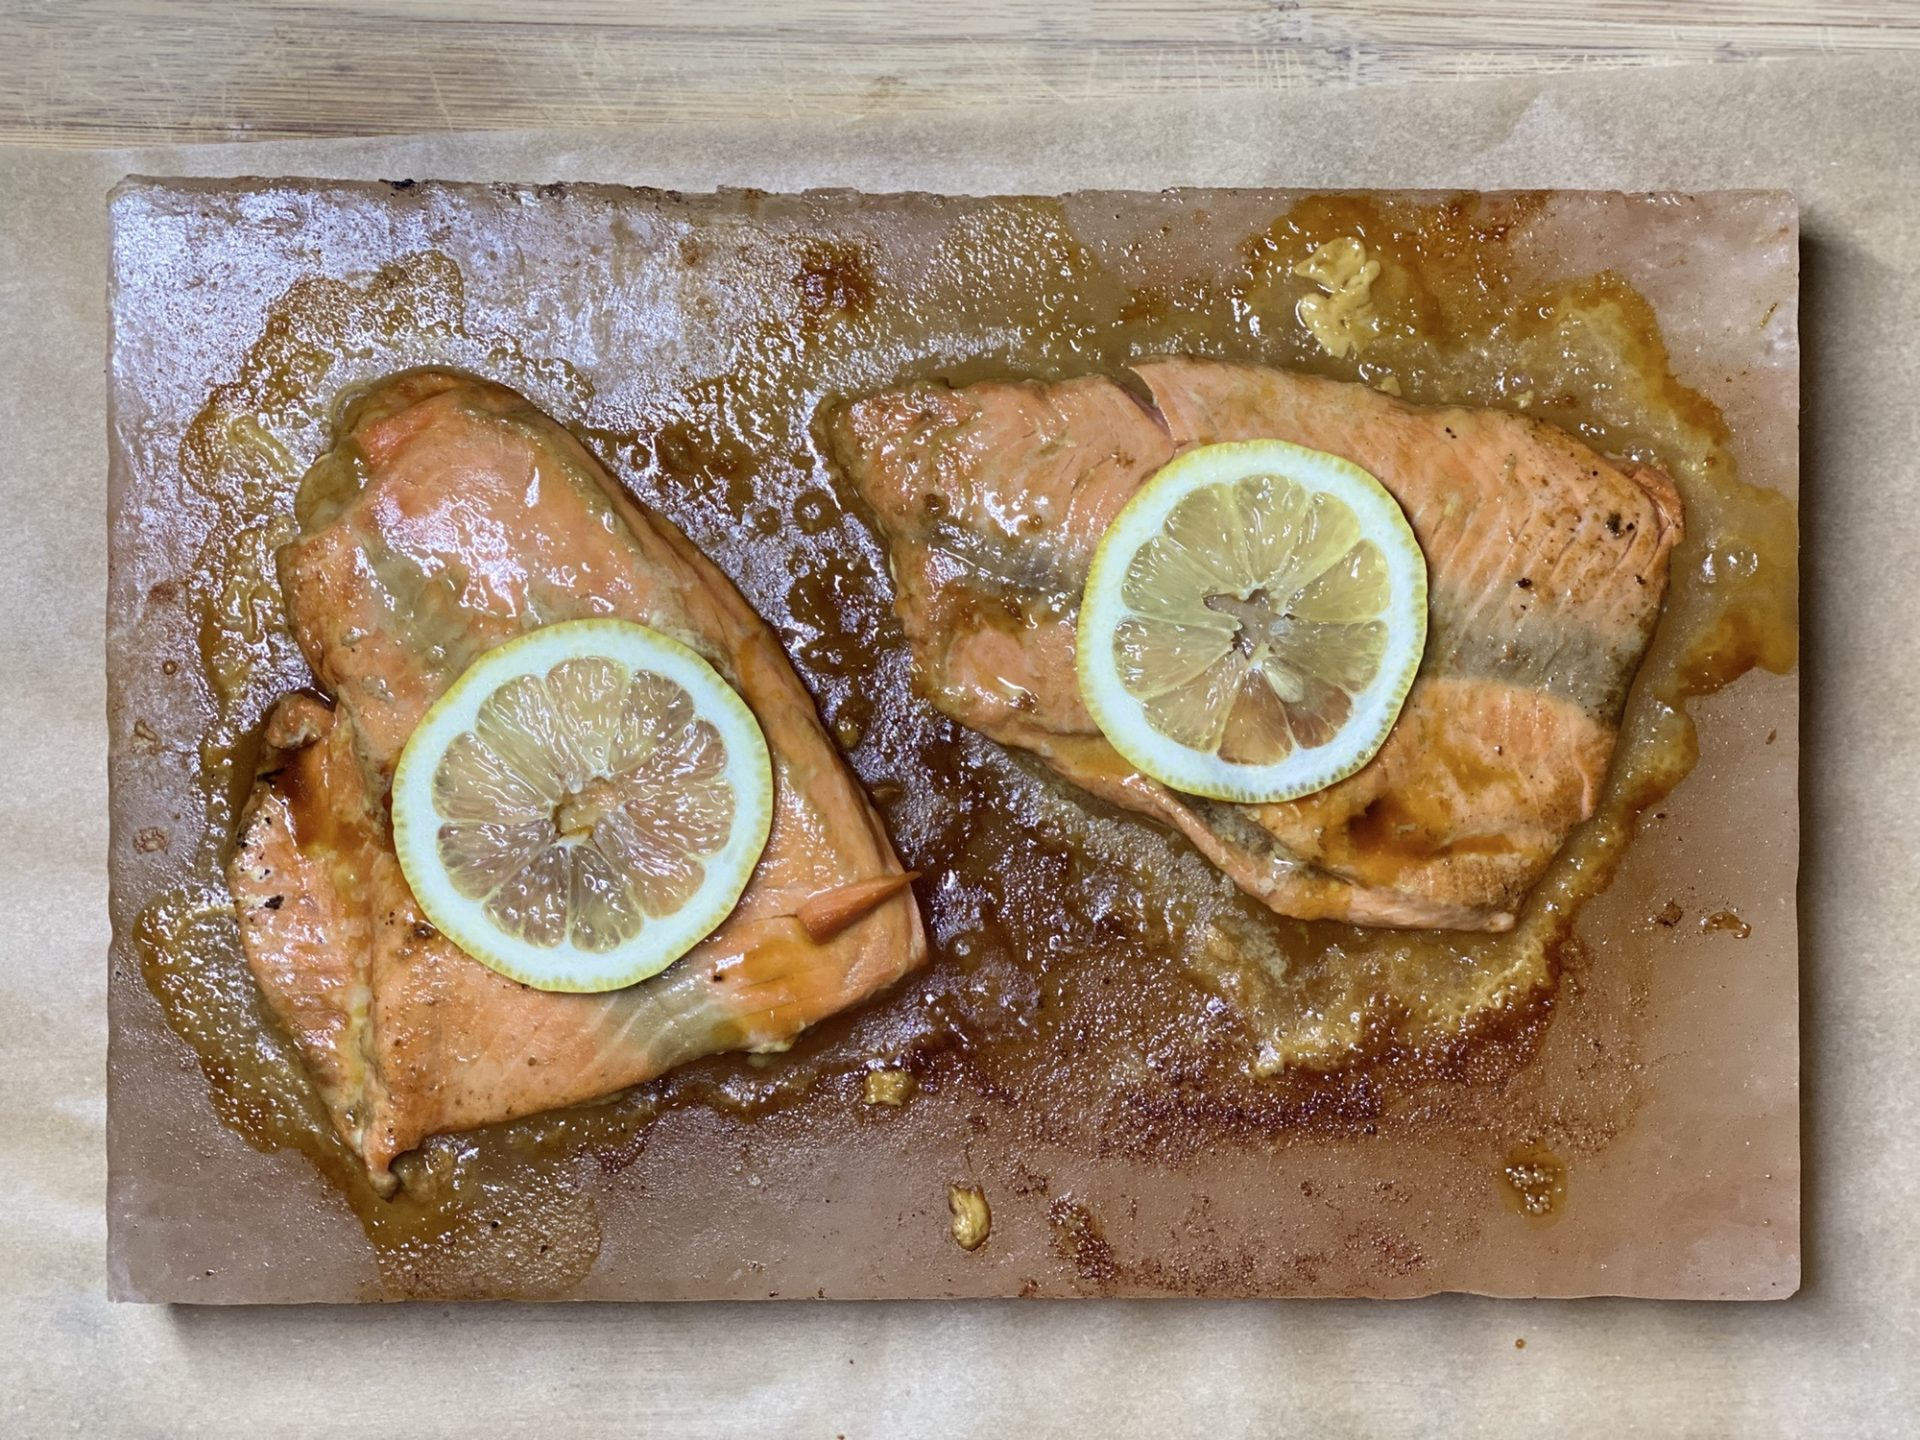 You'll impress everyone with this salt block salmon recipe, so prepare yourself to receive much praise when you serve this dish.